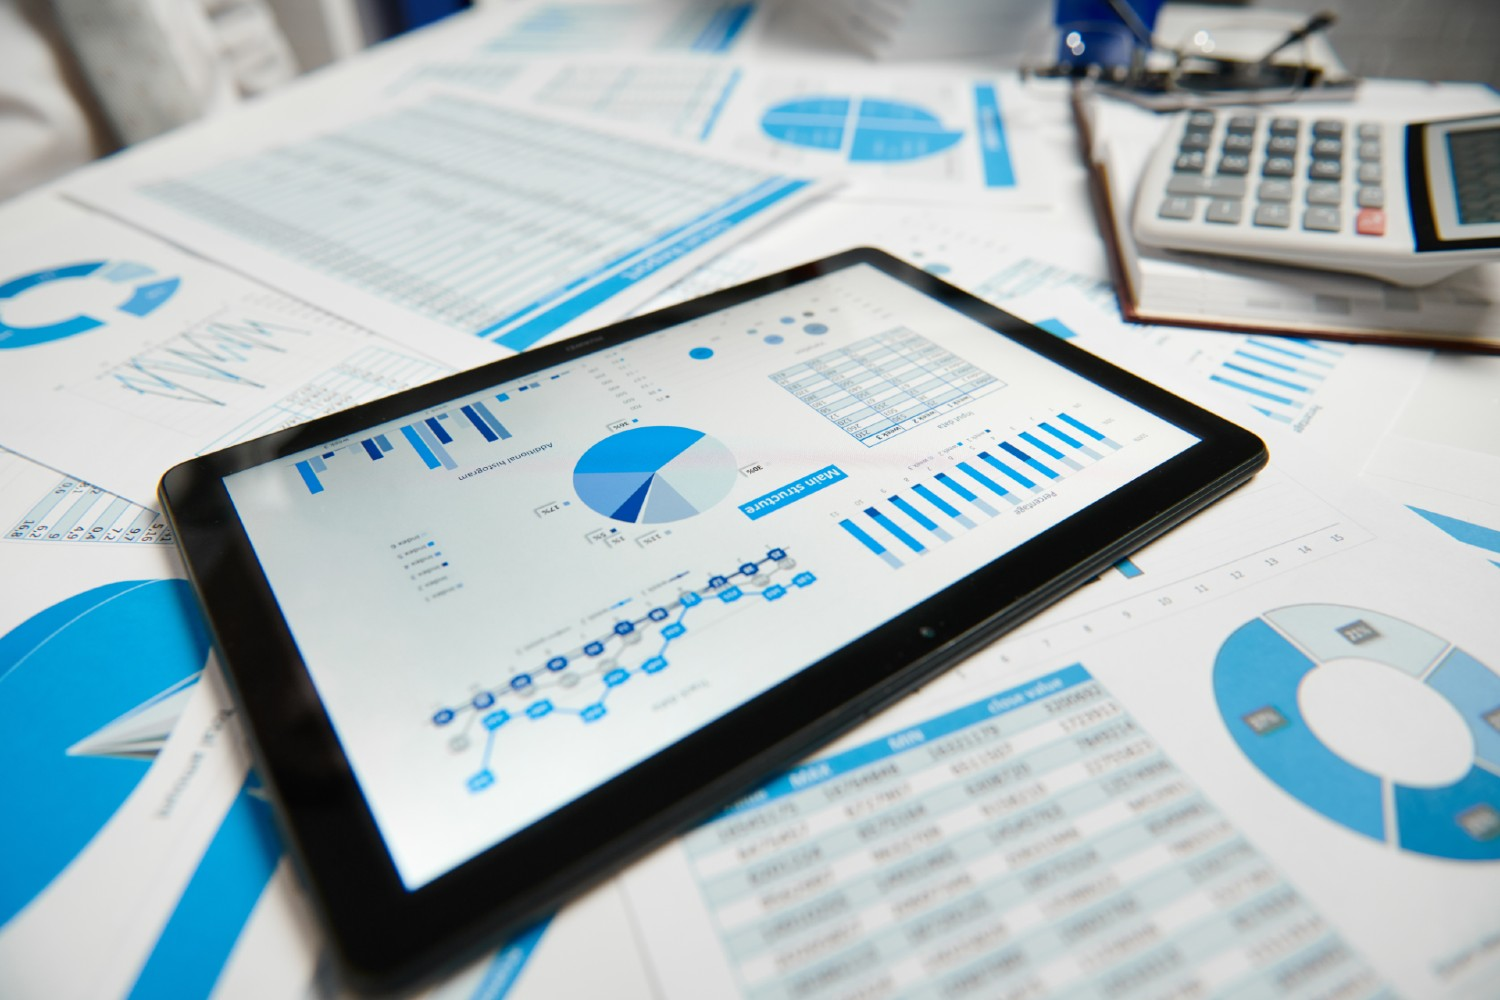 Financial Reporting Tablet